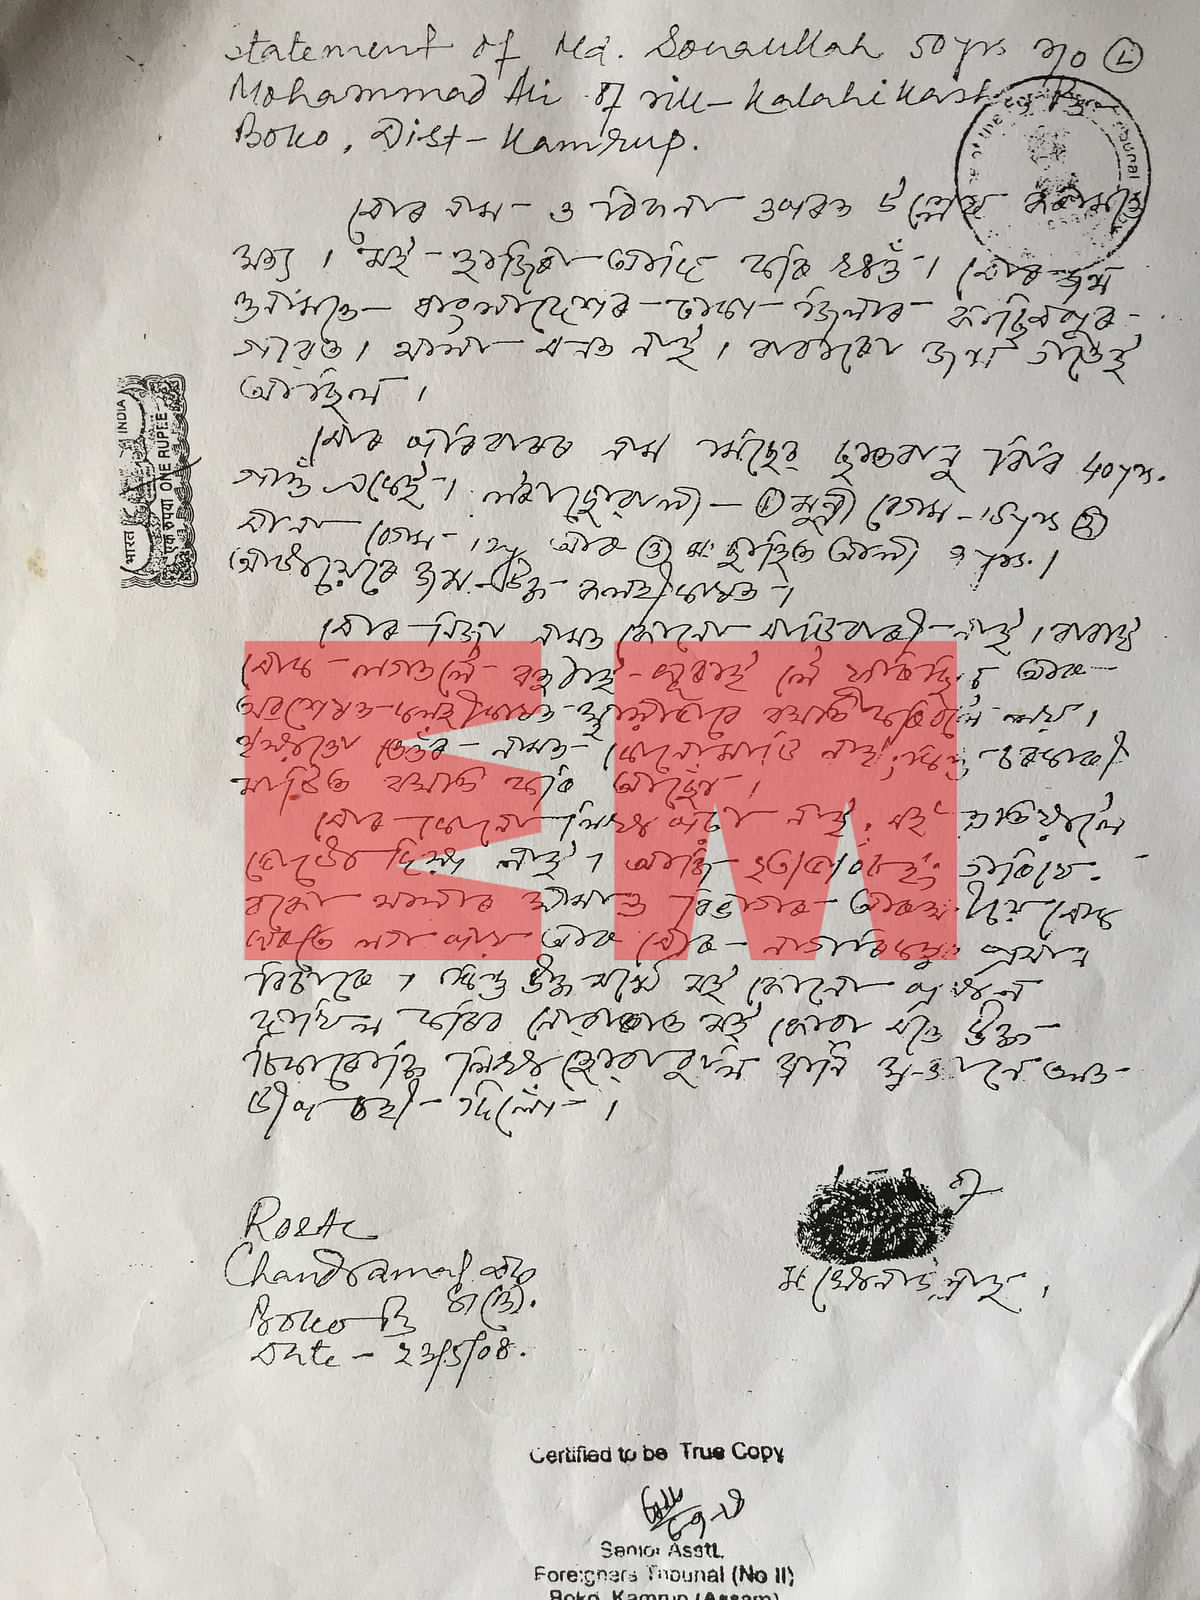 A copy of the statement prepared by Boko Police on Mohamed Sanaullah (Part 1)